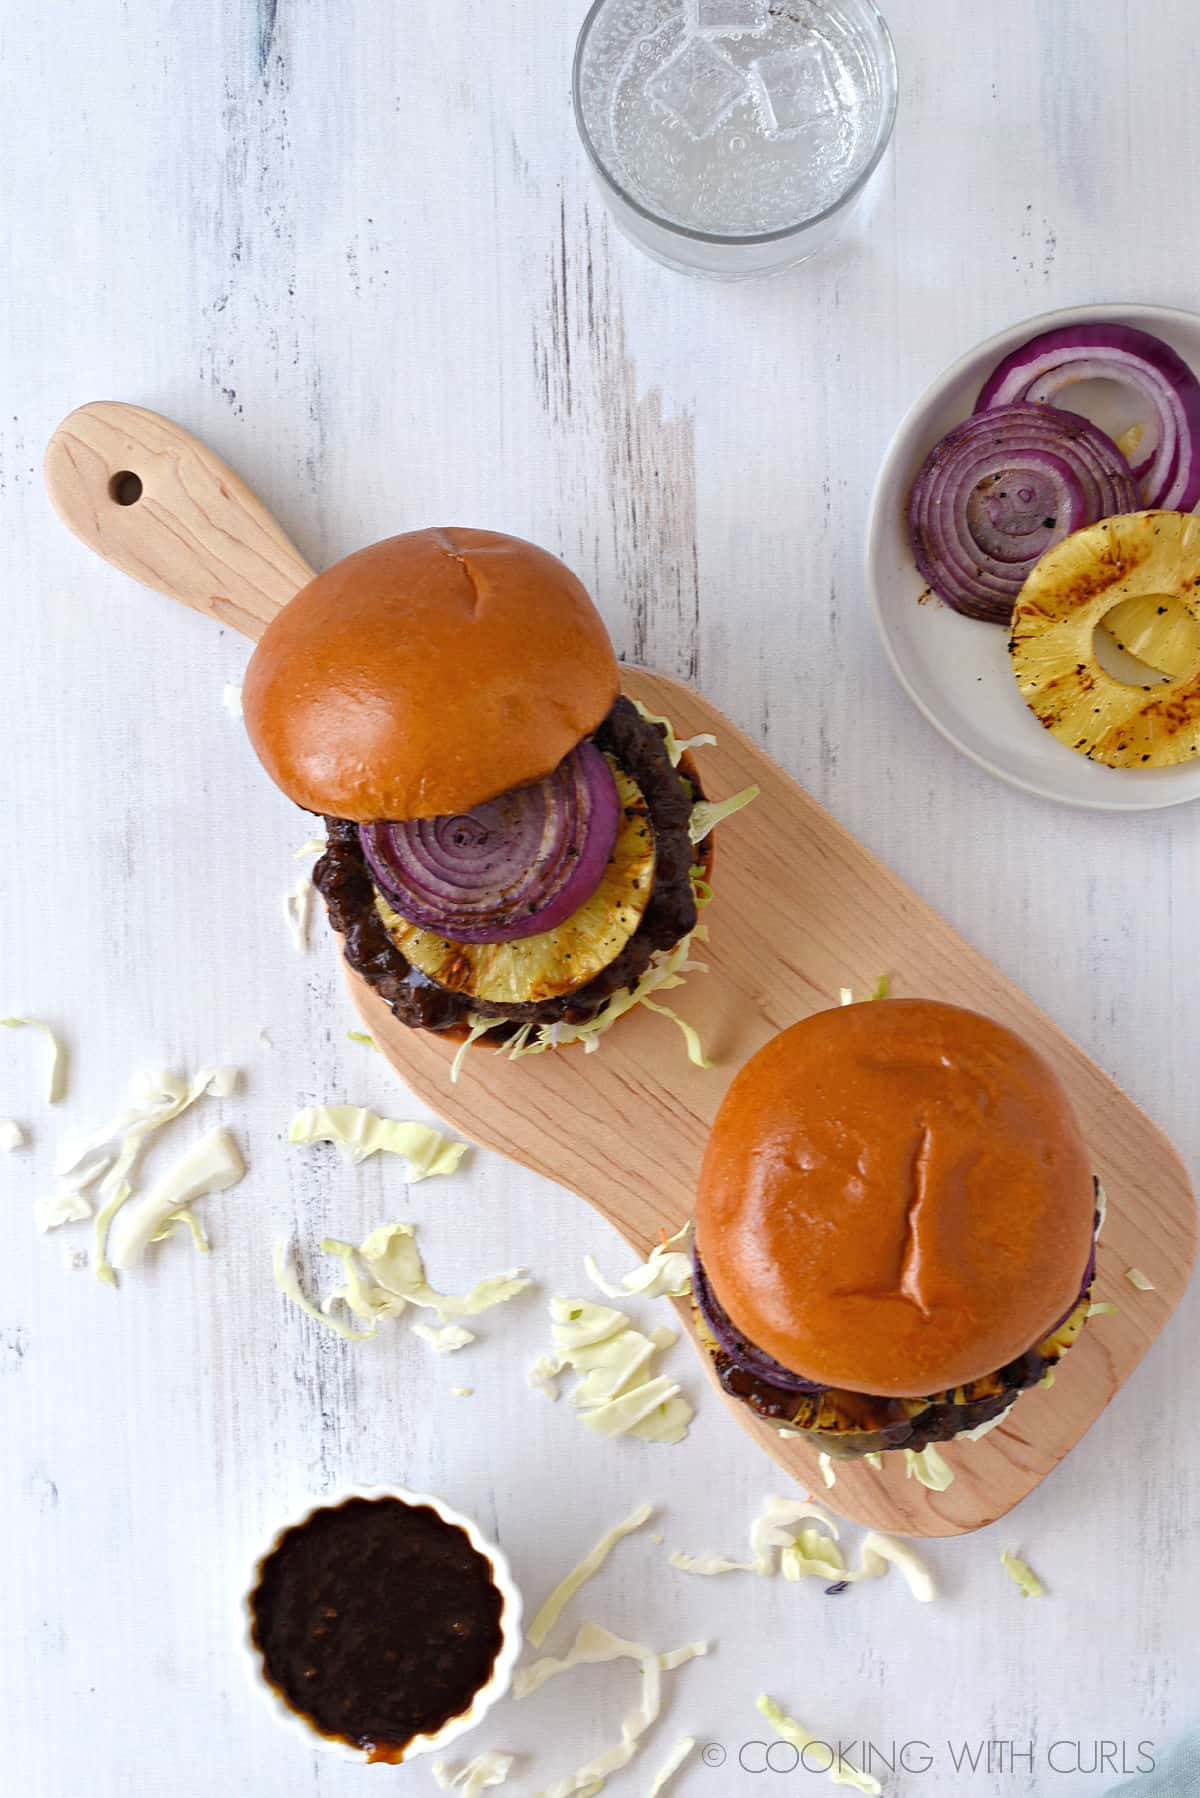 looking down on two burgers topped with grilled buns sitting on a wood cutting board with a small bowl of teriyaki sauce in front, and plate with grilled pineapple and red onion rings and a glass of bubbly water in the background.